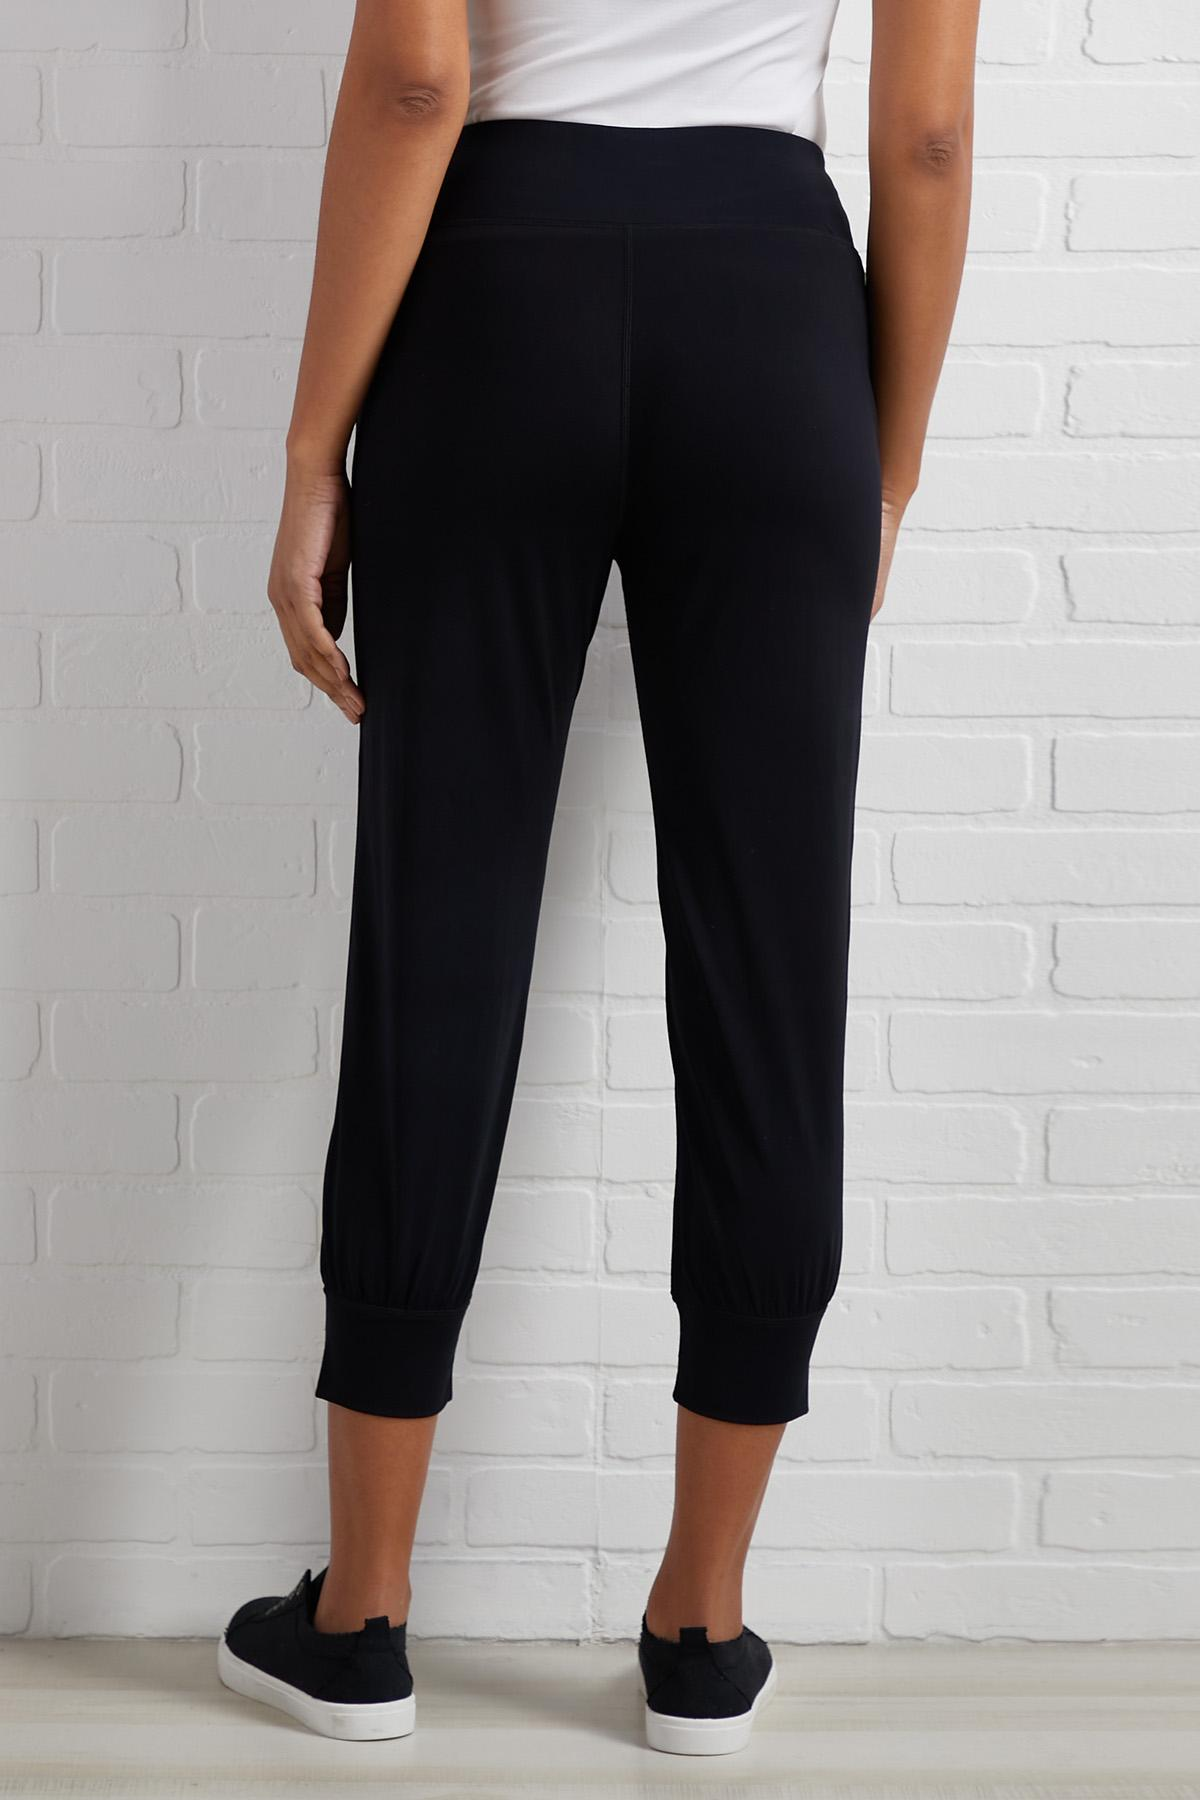 The List Goes On And Nylon Joggers